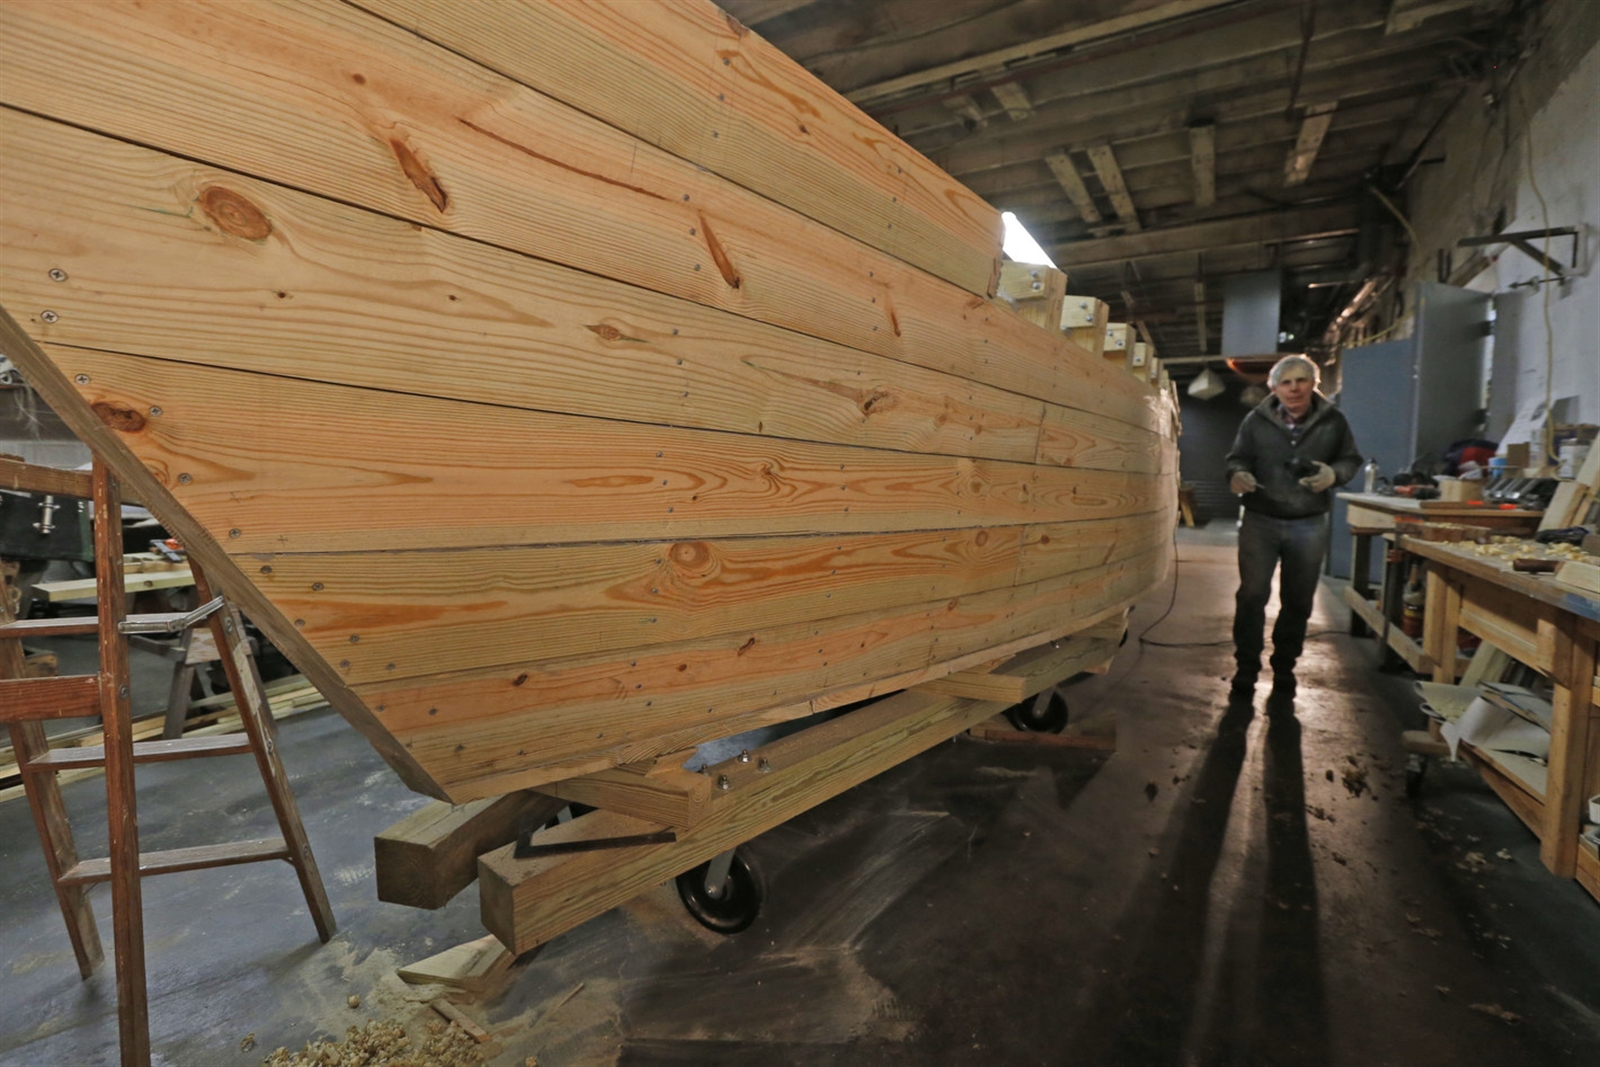 The 42-foot replica Erie Canal cargo boat is being built at the Buffalo Maritime Center on Arthur St. in Buffalo on Tuesday, Jan. 31, 2017.